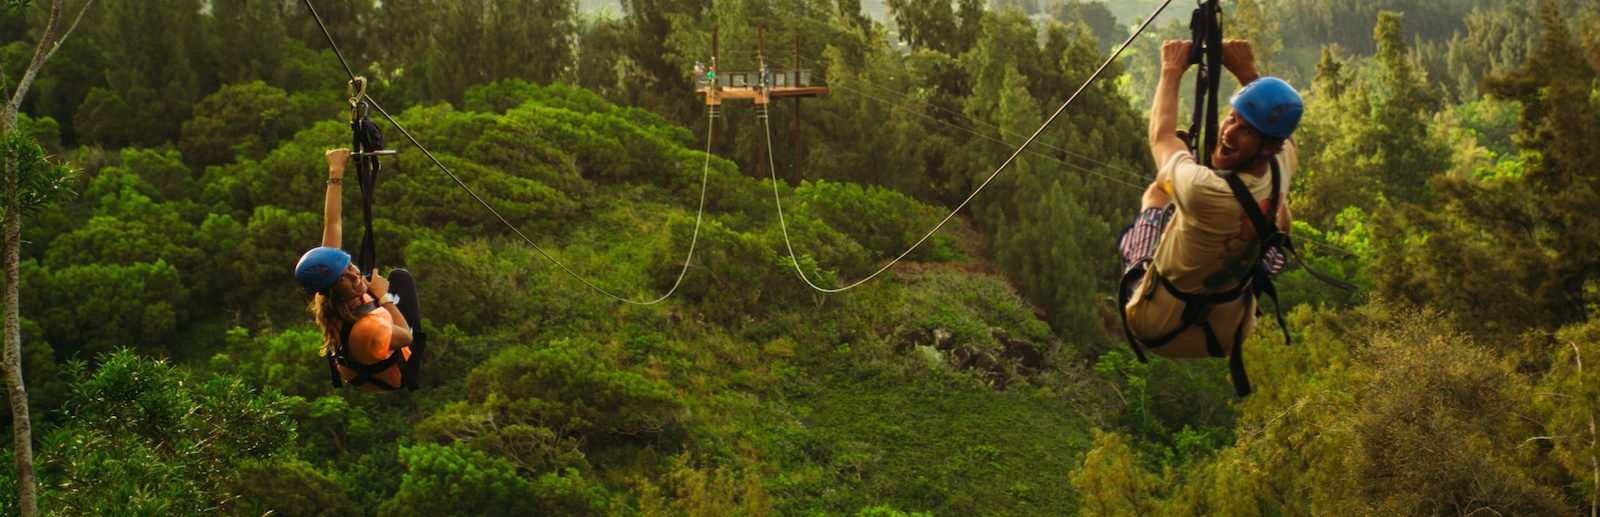 Top 5 Reasons Why Groups Love Our Oahu Zipline Tours